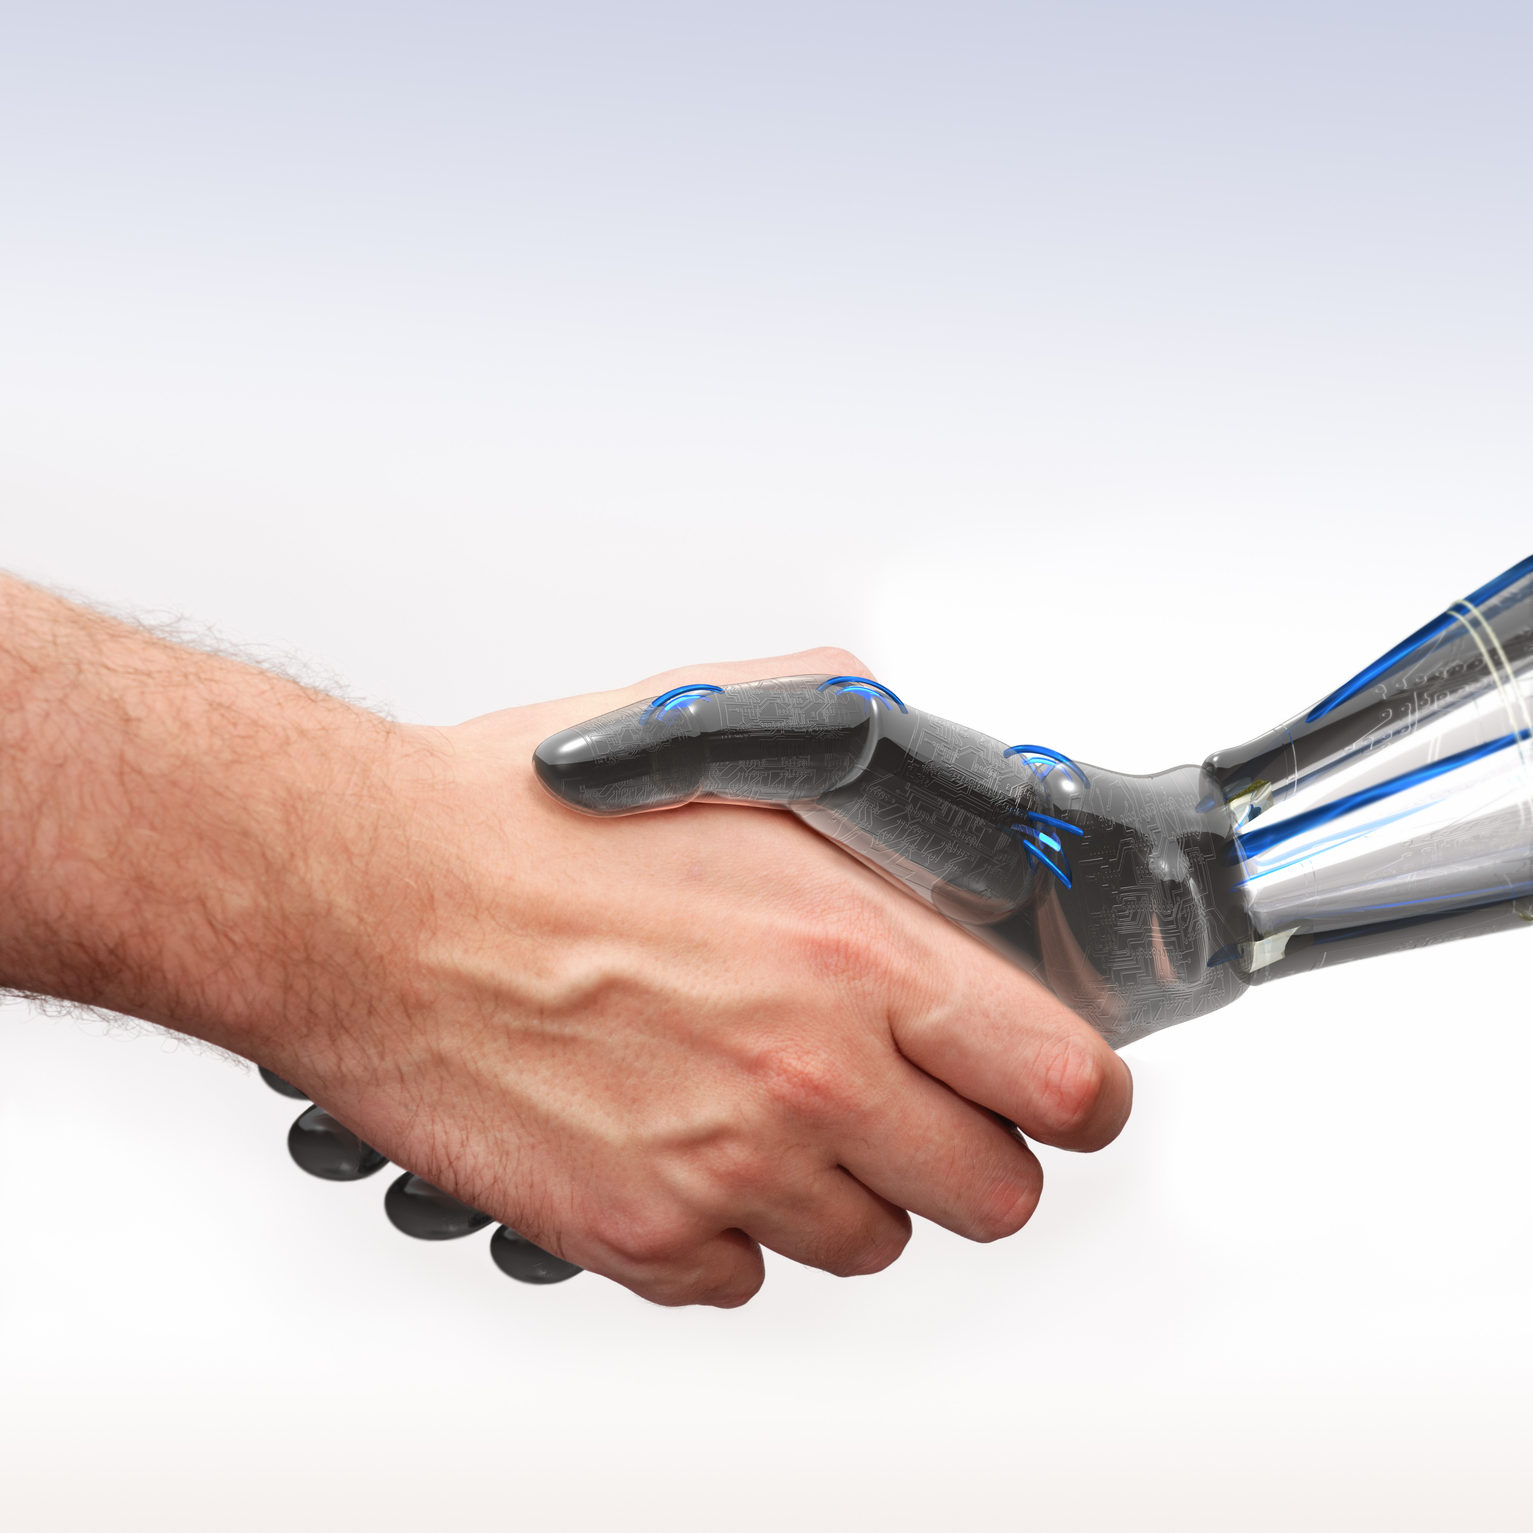 Variation of the classic handshake concept shot with a human hand and a robot hand.Very detailed rendering of the robotic hand, zoom in to view.